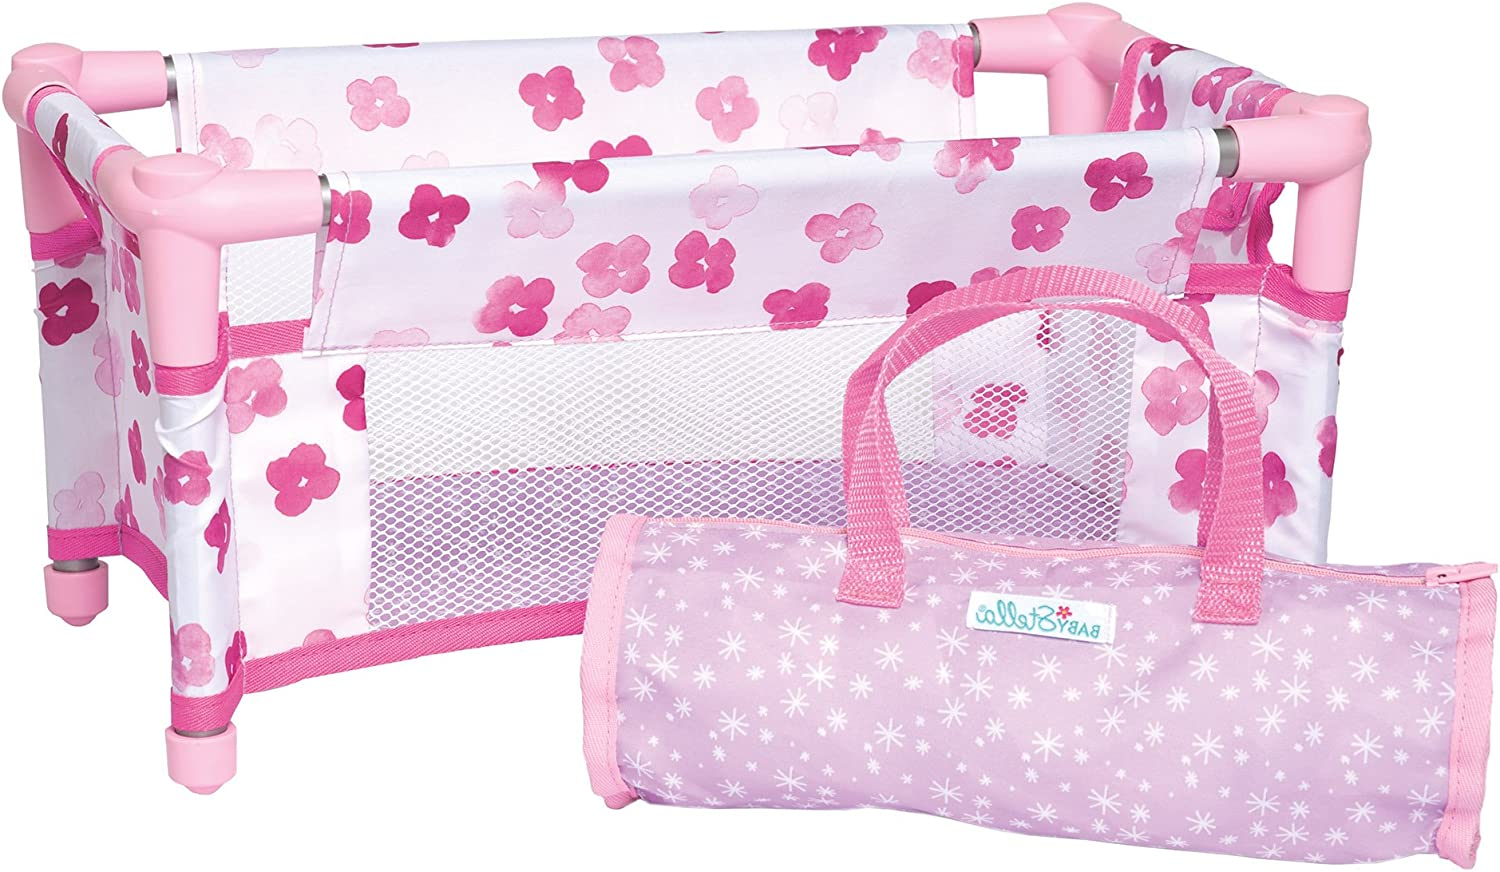 Manhattan Toy Baby Stella Take Along Baby Doll Crib Accessory Set for 12 and 15 Soft Dolls